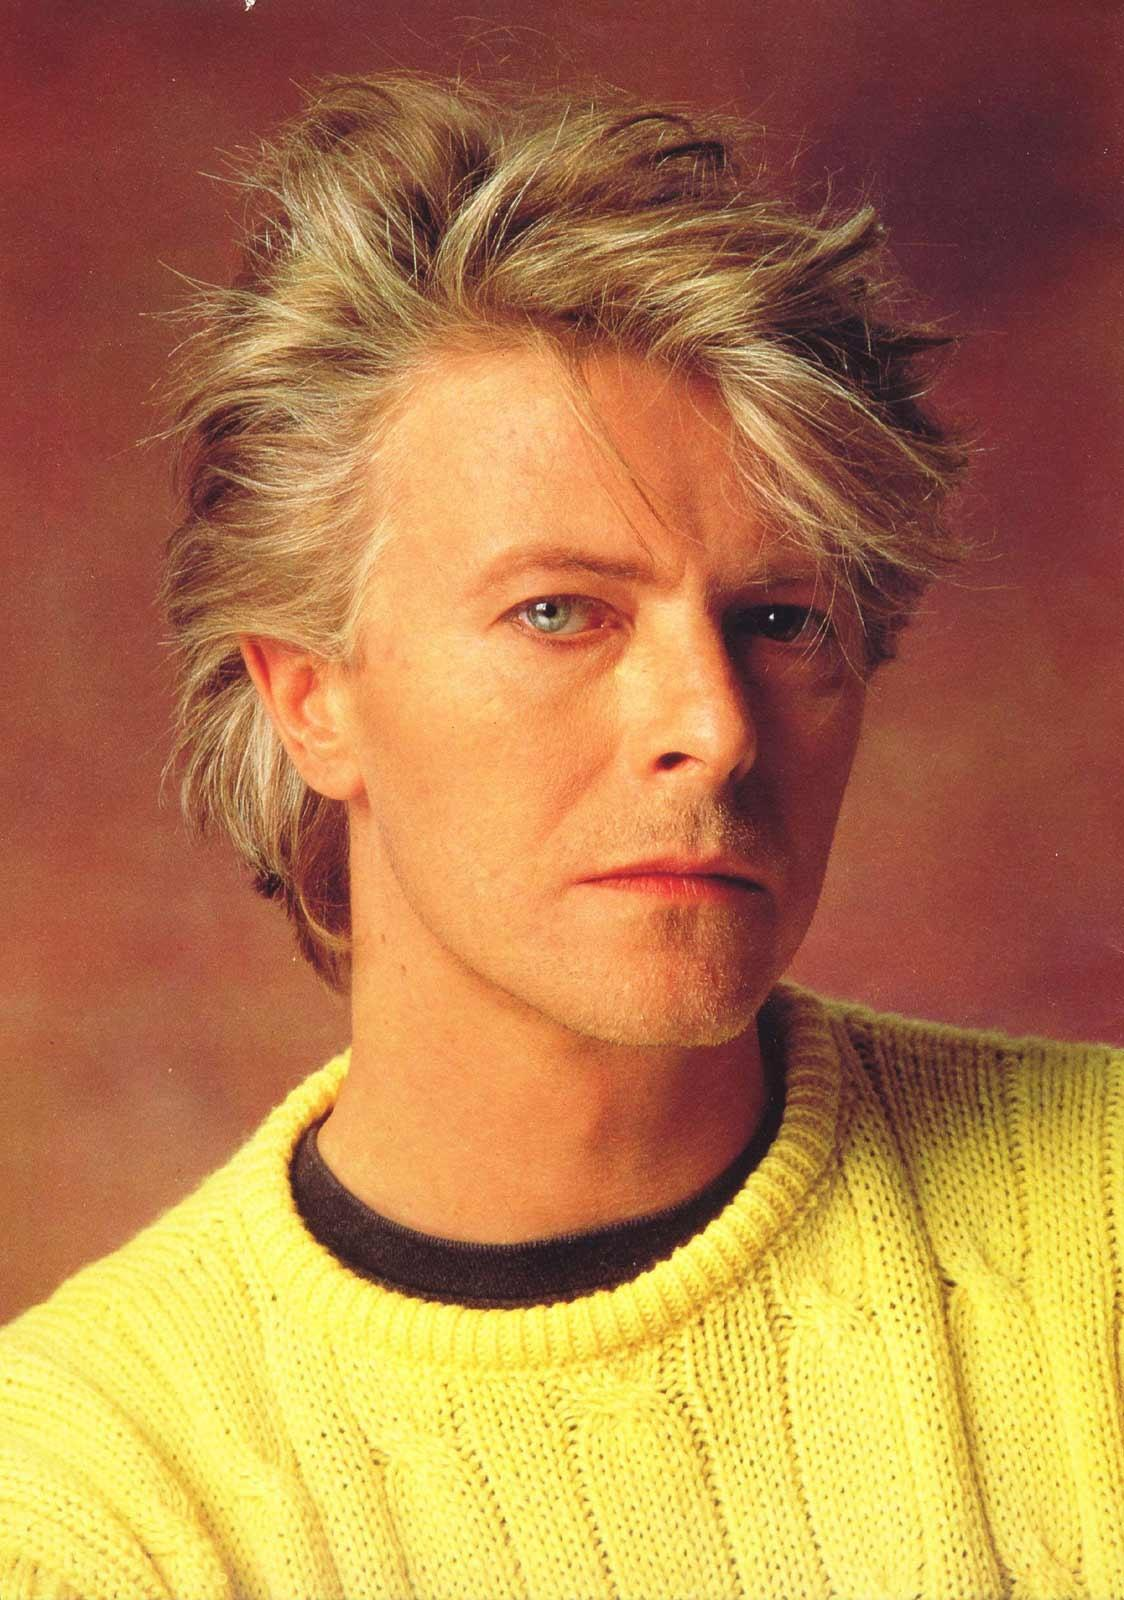 a-guide-to-cool-folkr-david-bowie-10